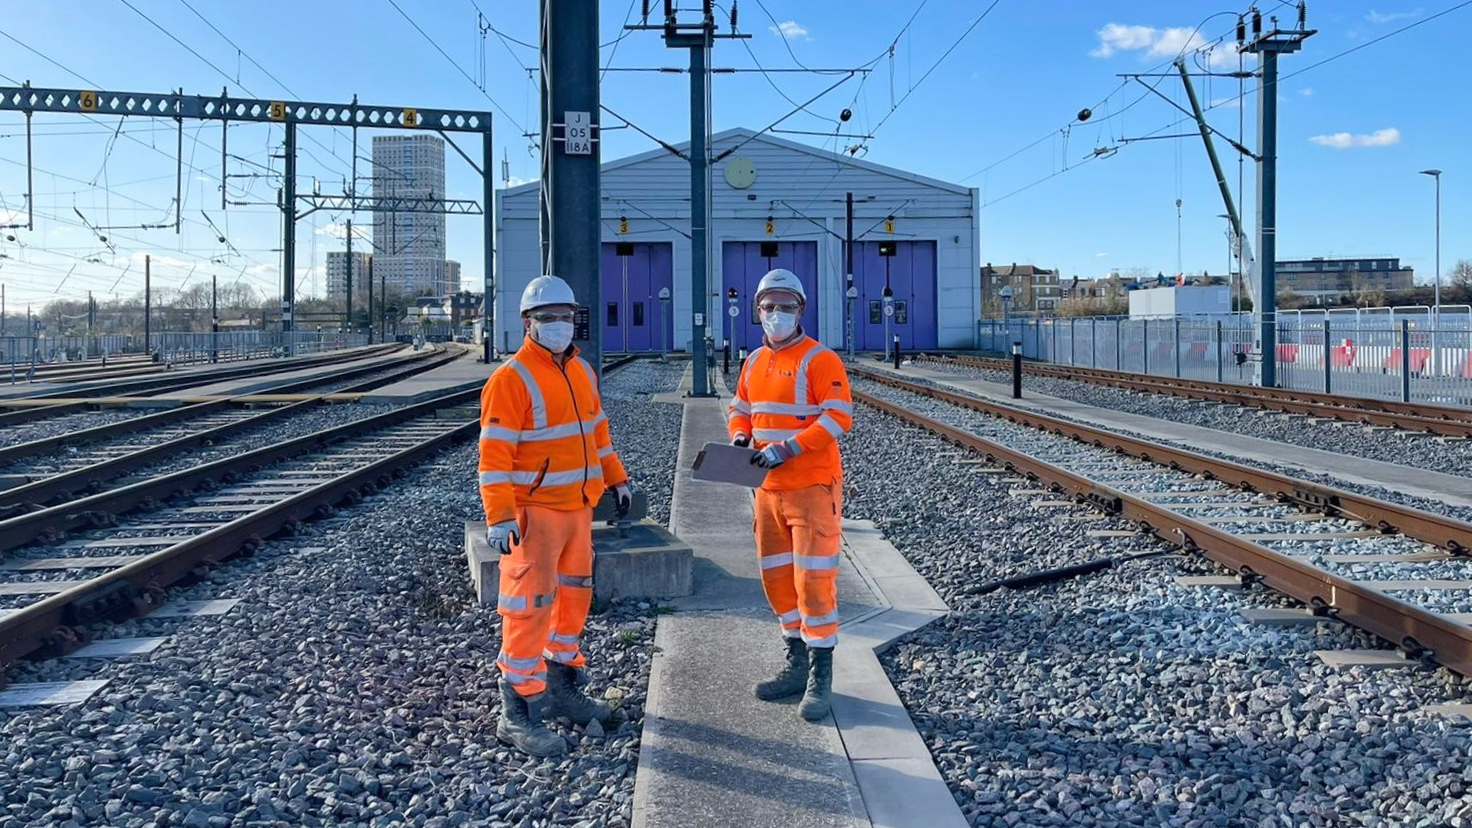 The Heathrow Express depot is formally handed over to Network Rail